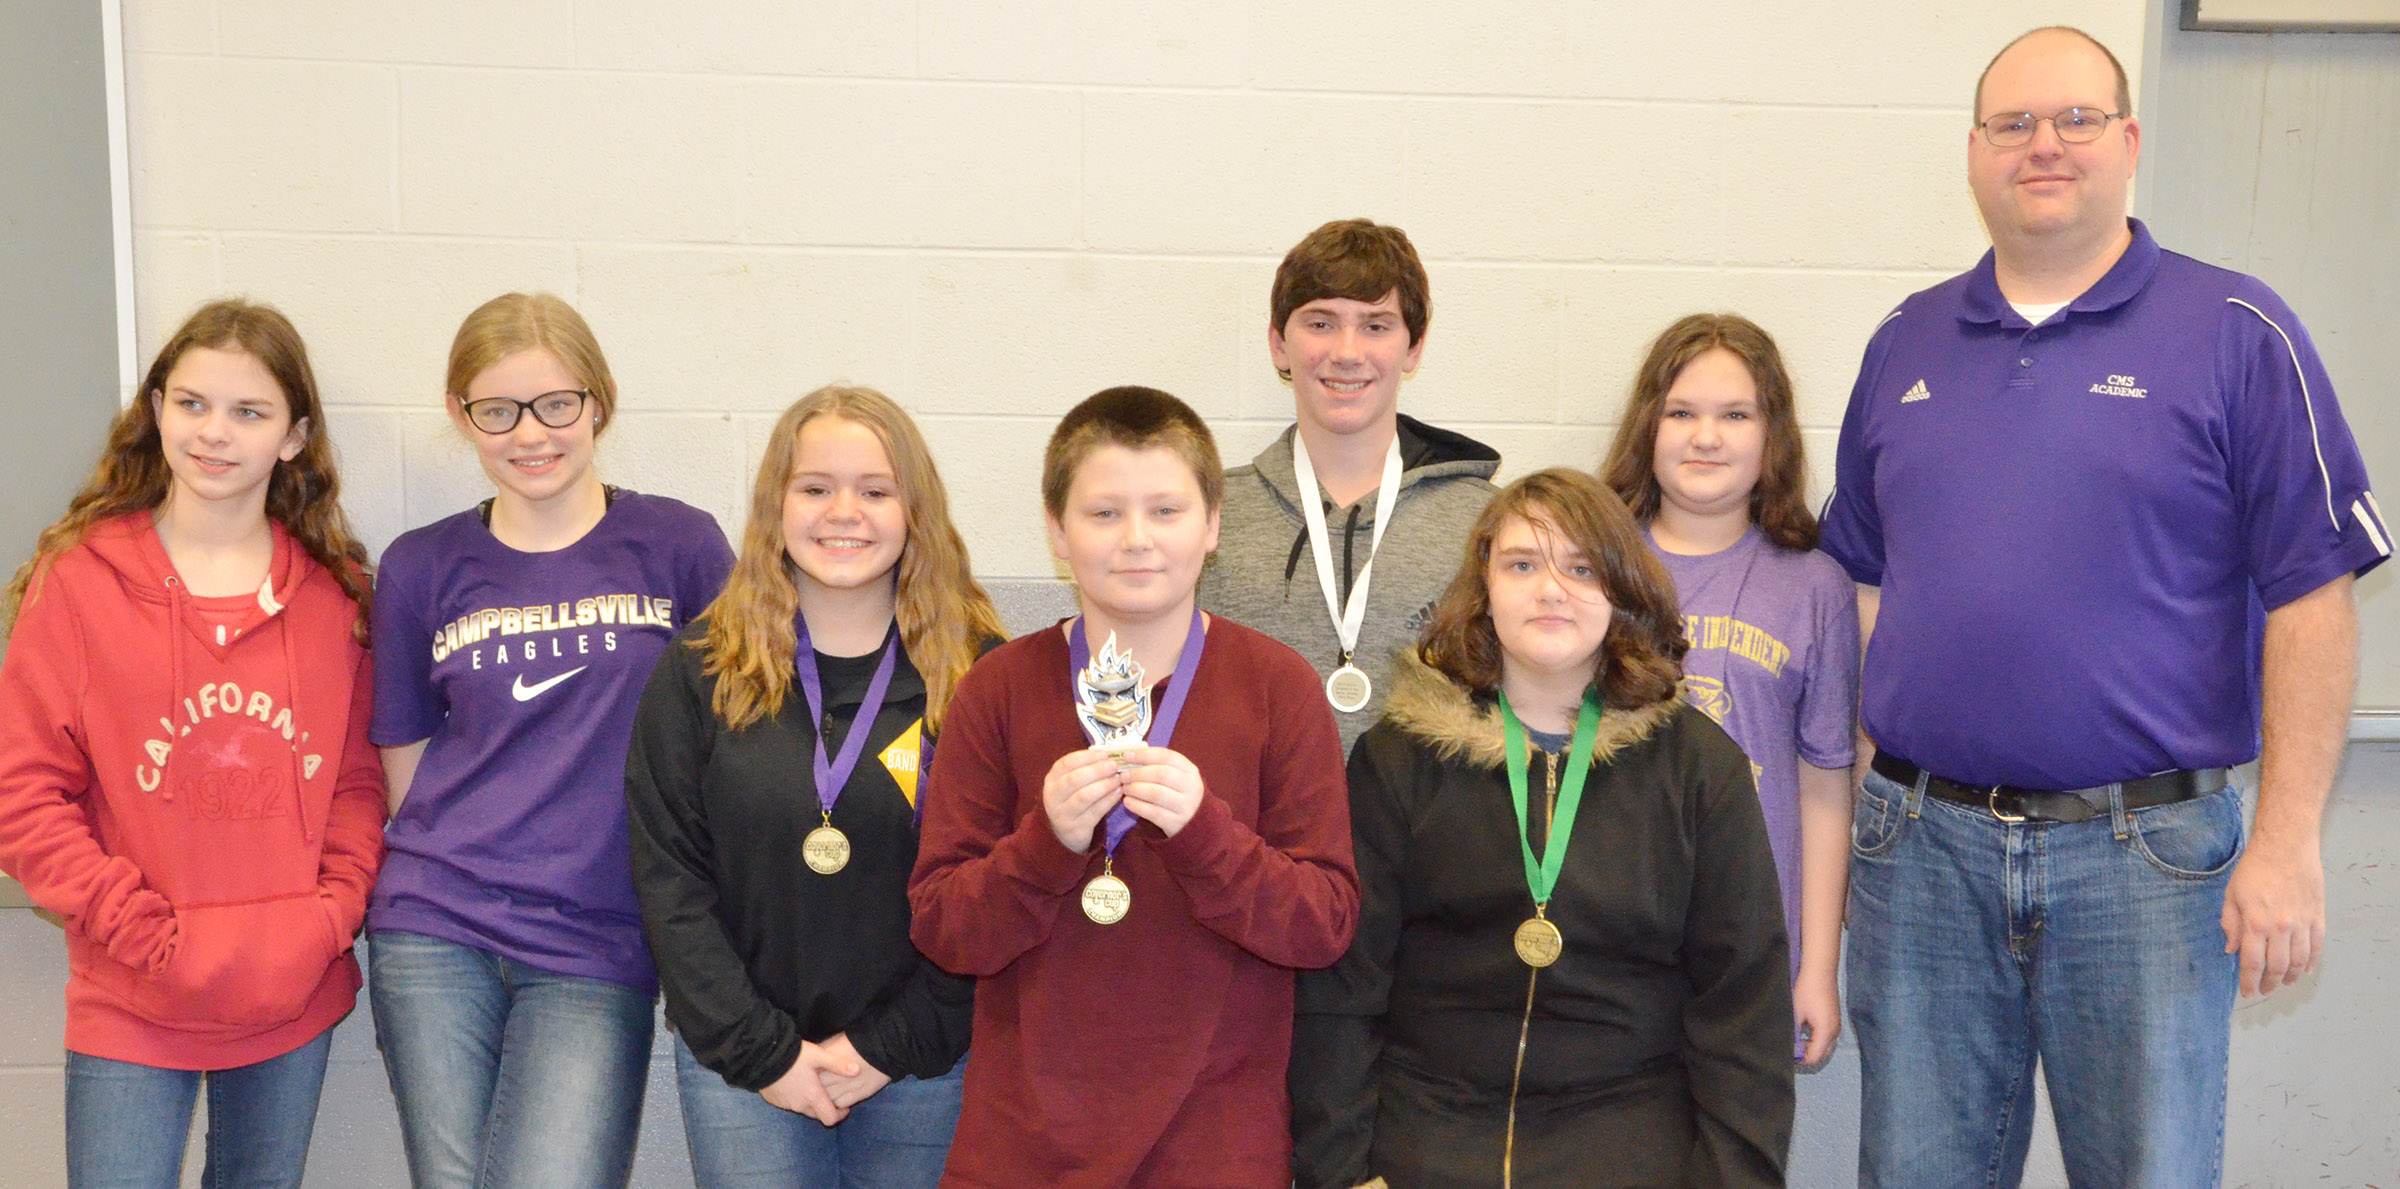 CMS academic team members competing at district competition are, from left, sixth-graders Karlee Rakel and Whitney Frashure, seventh-graders Riley Rainwater, Bailey Stearman and Peyton Dabney, eighth-grader Haley Lopez, sixth-grader Savannah Gumm and coach Steven Gumm.